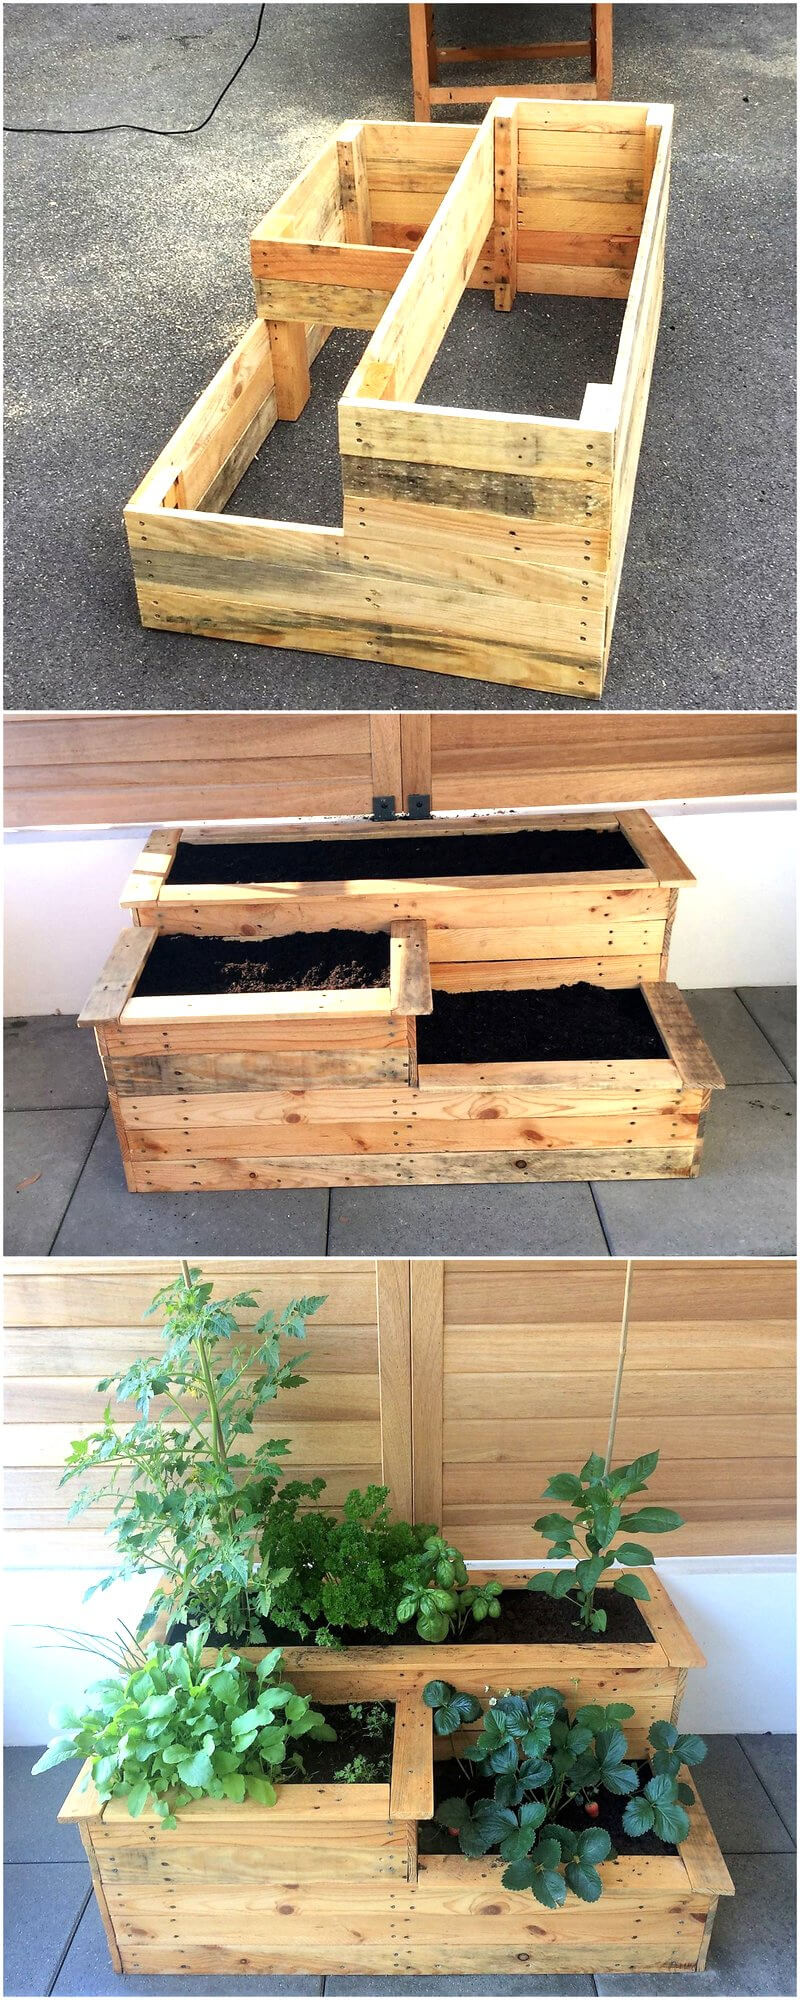 Repurposing Plans For Shipping Wood Pallets Wood Pallet Furniture